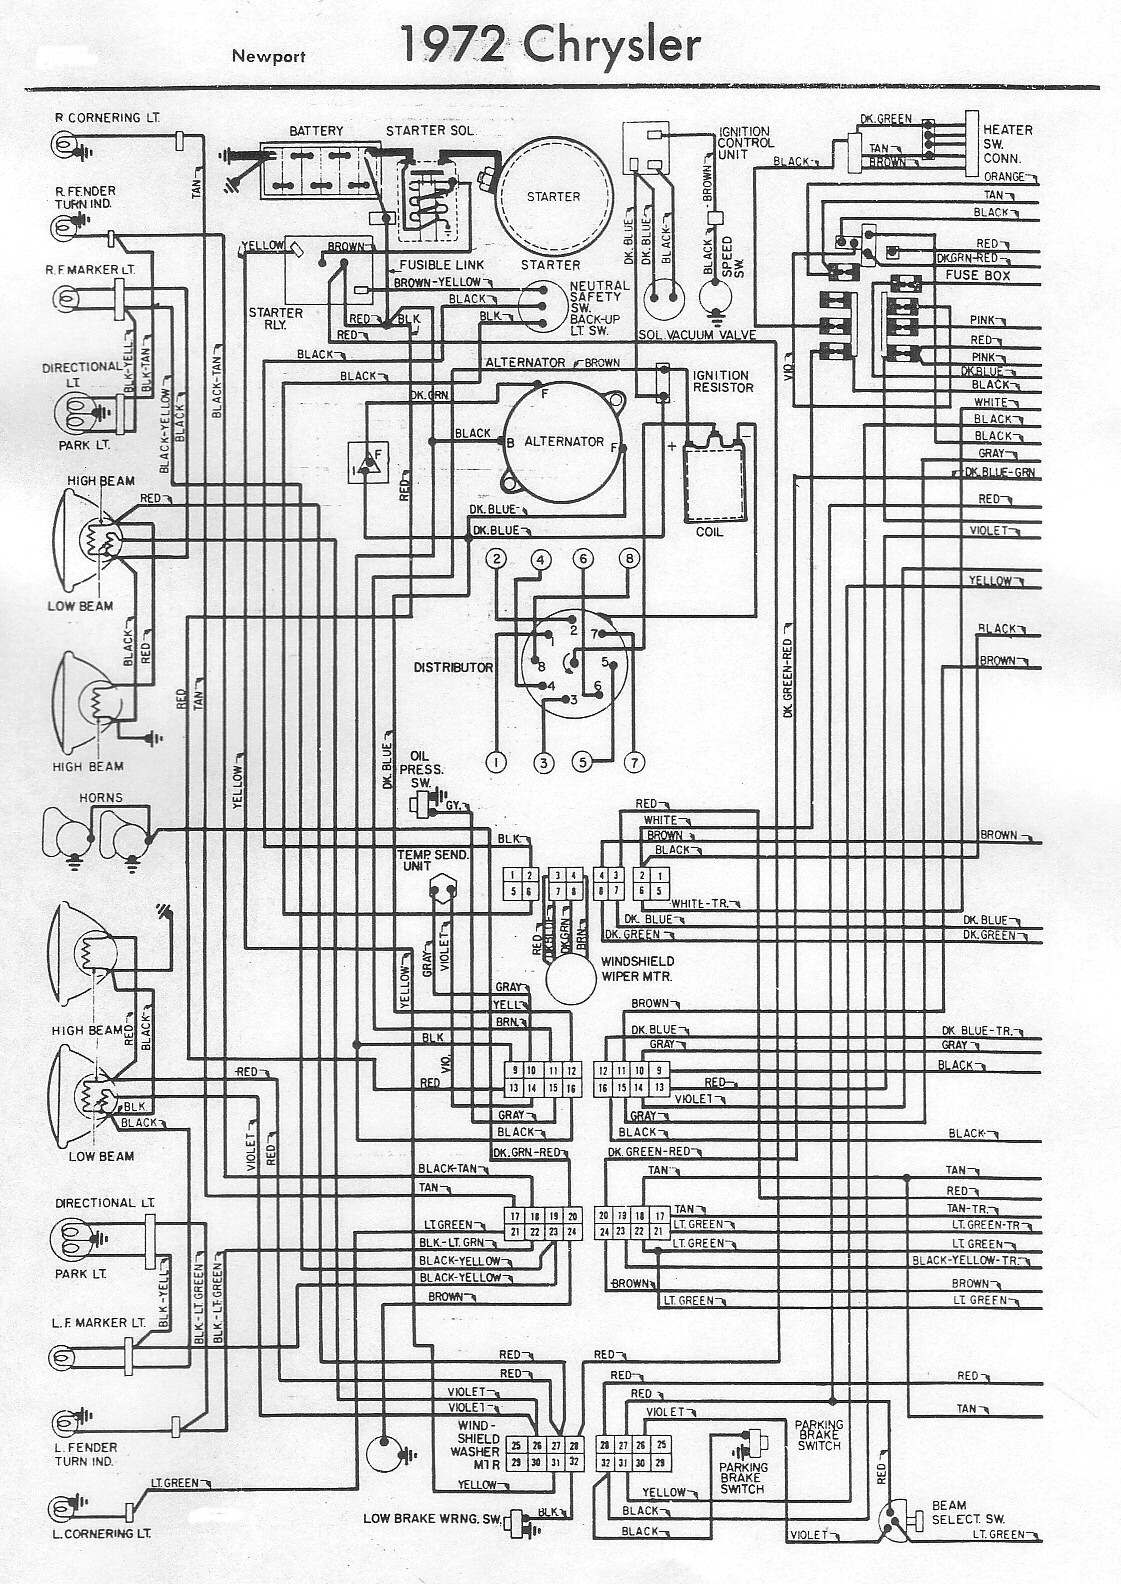 [SCHEMATICS_48IU]  1966 Chrysler Newport Wiring Diagram Diagram Base Website Wiring Diagram -  VENNDIAGRAMPURPOSE.DIRITTOALCORTO.IT | 1966 Chrysler New Yorker Wiring Diagram |  | Diagram Base Website Full Edition - dirittoalcorto